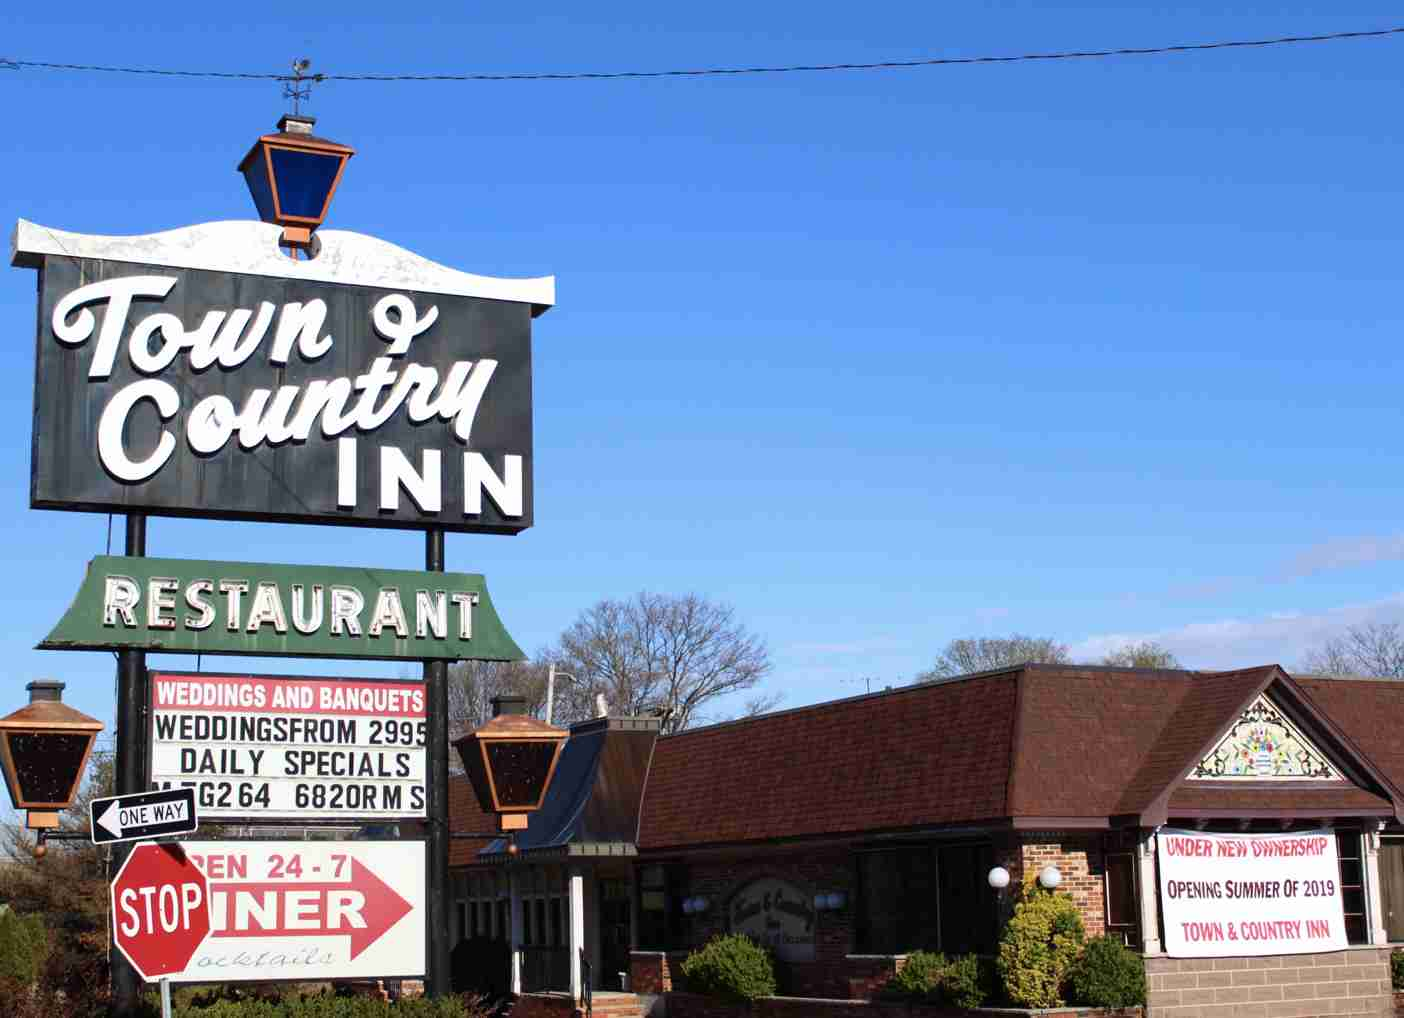 Town & country Inn Opening 2019